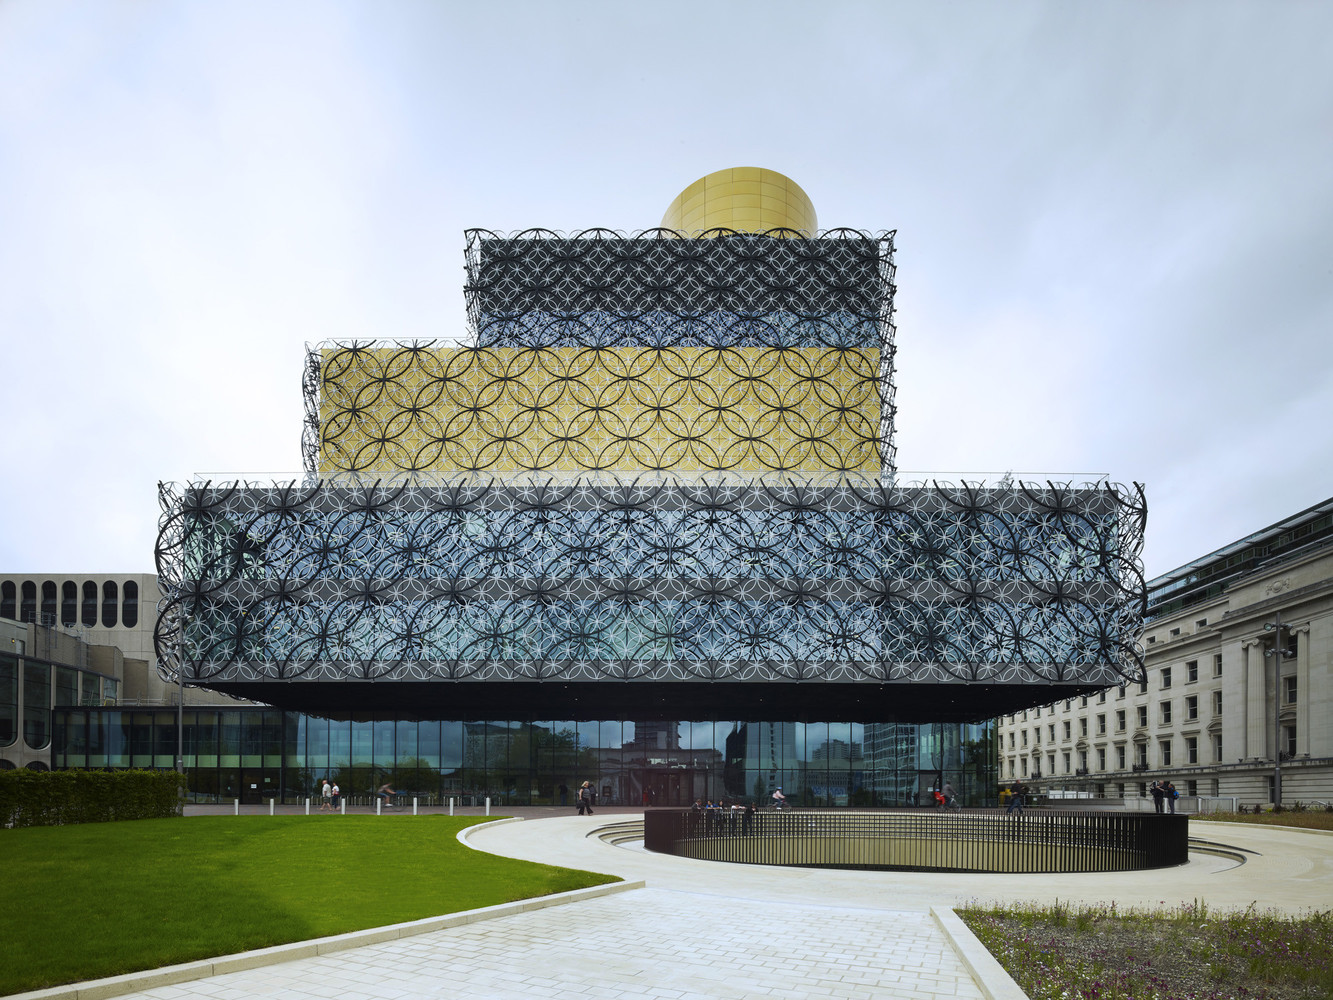 The Library of Birmingham (UK) [OS] [1333×1000] Photo by Christian Richters